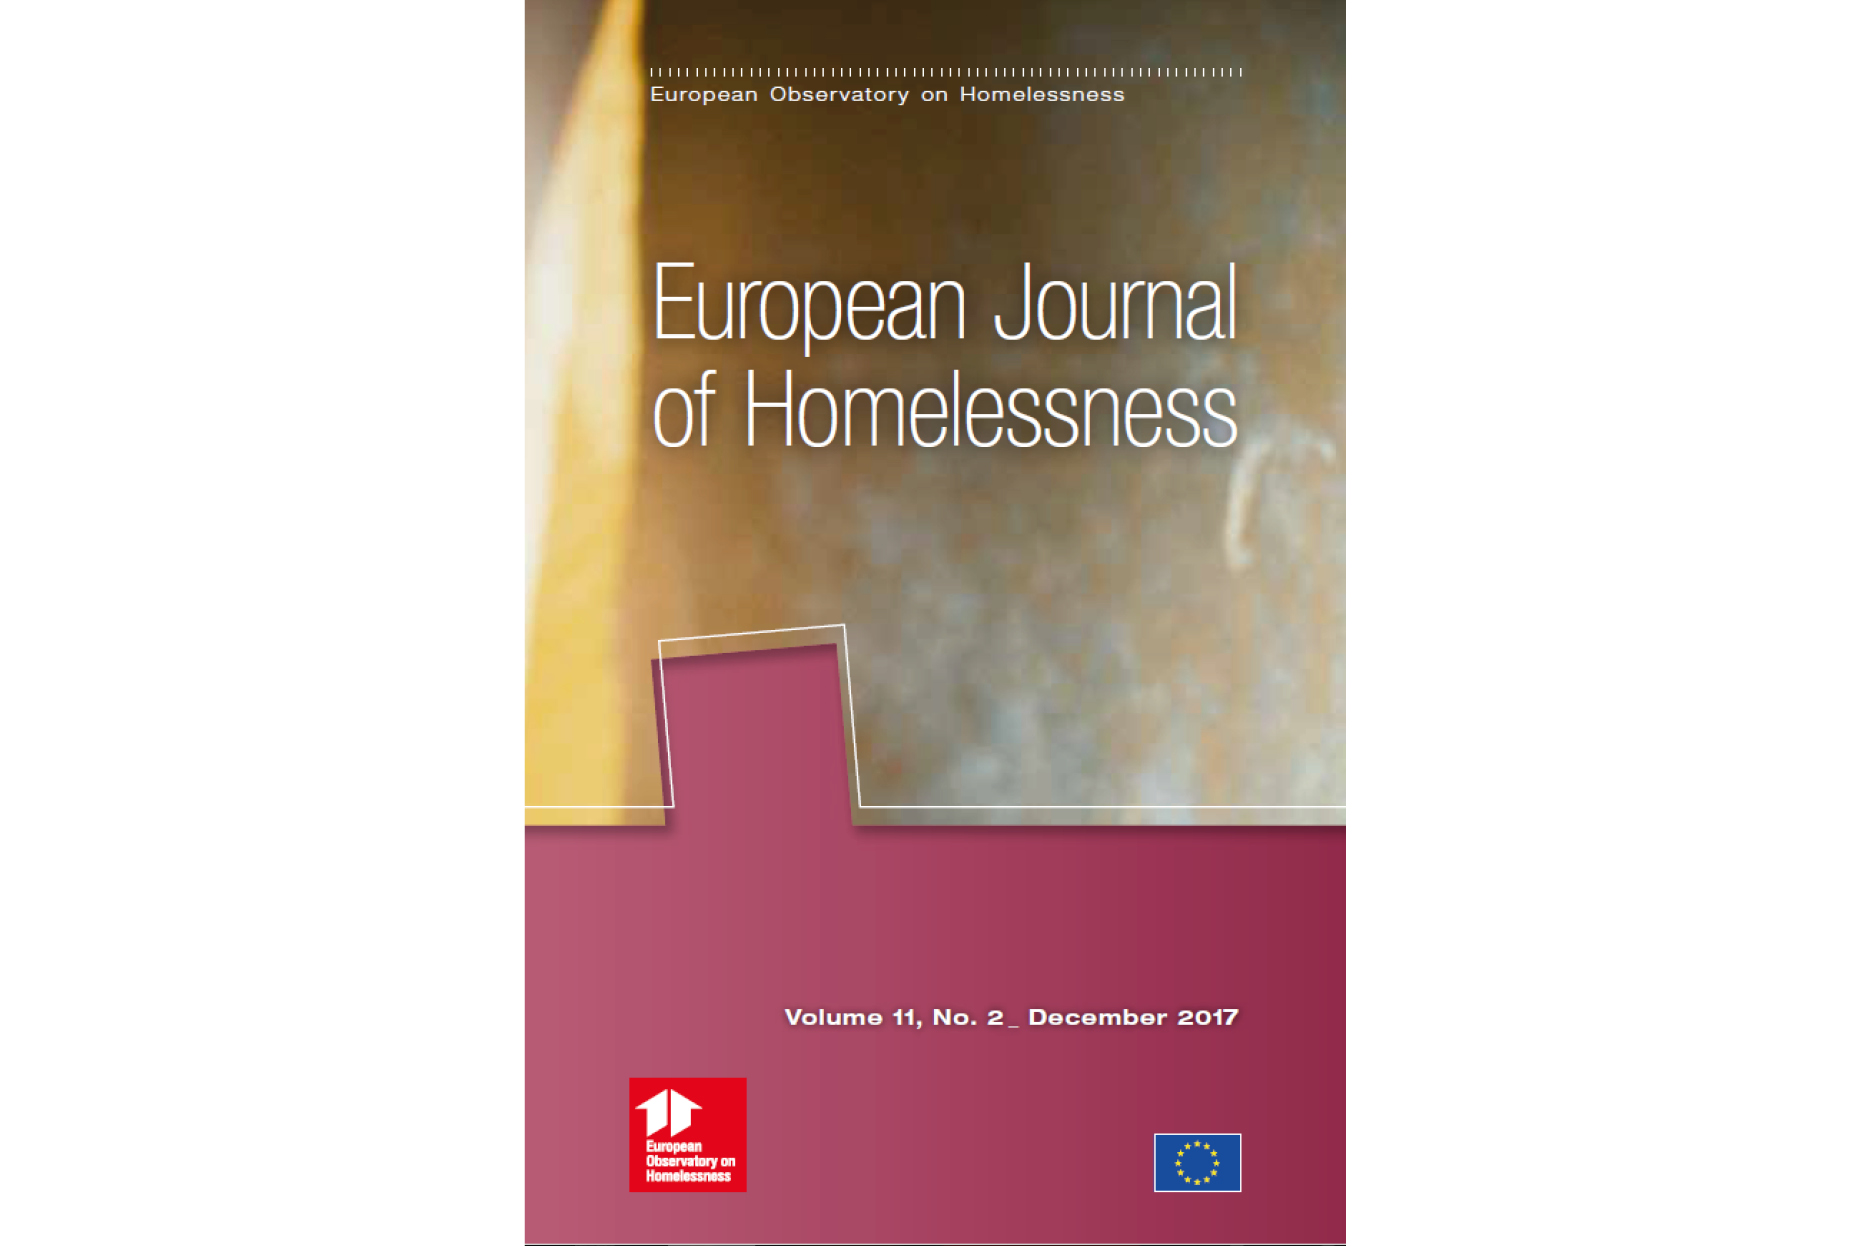 European Journal of Homelessness: Volume 11, Issue 2 - 2017